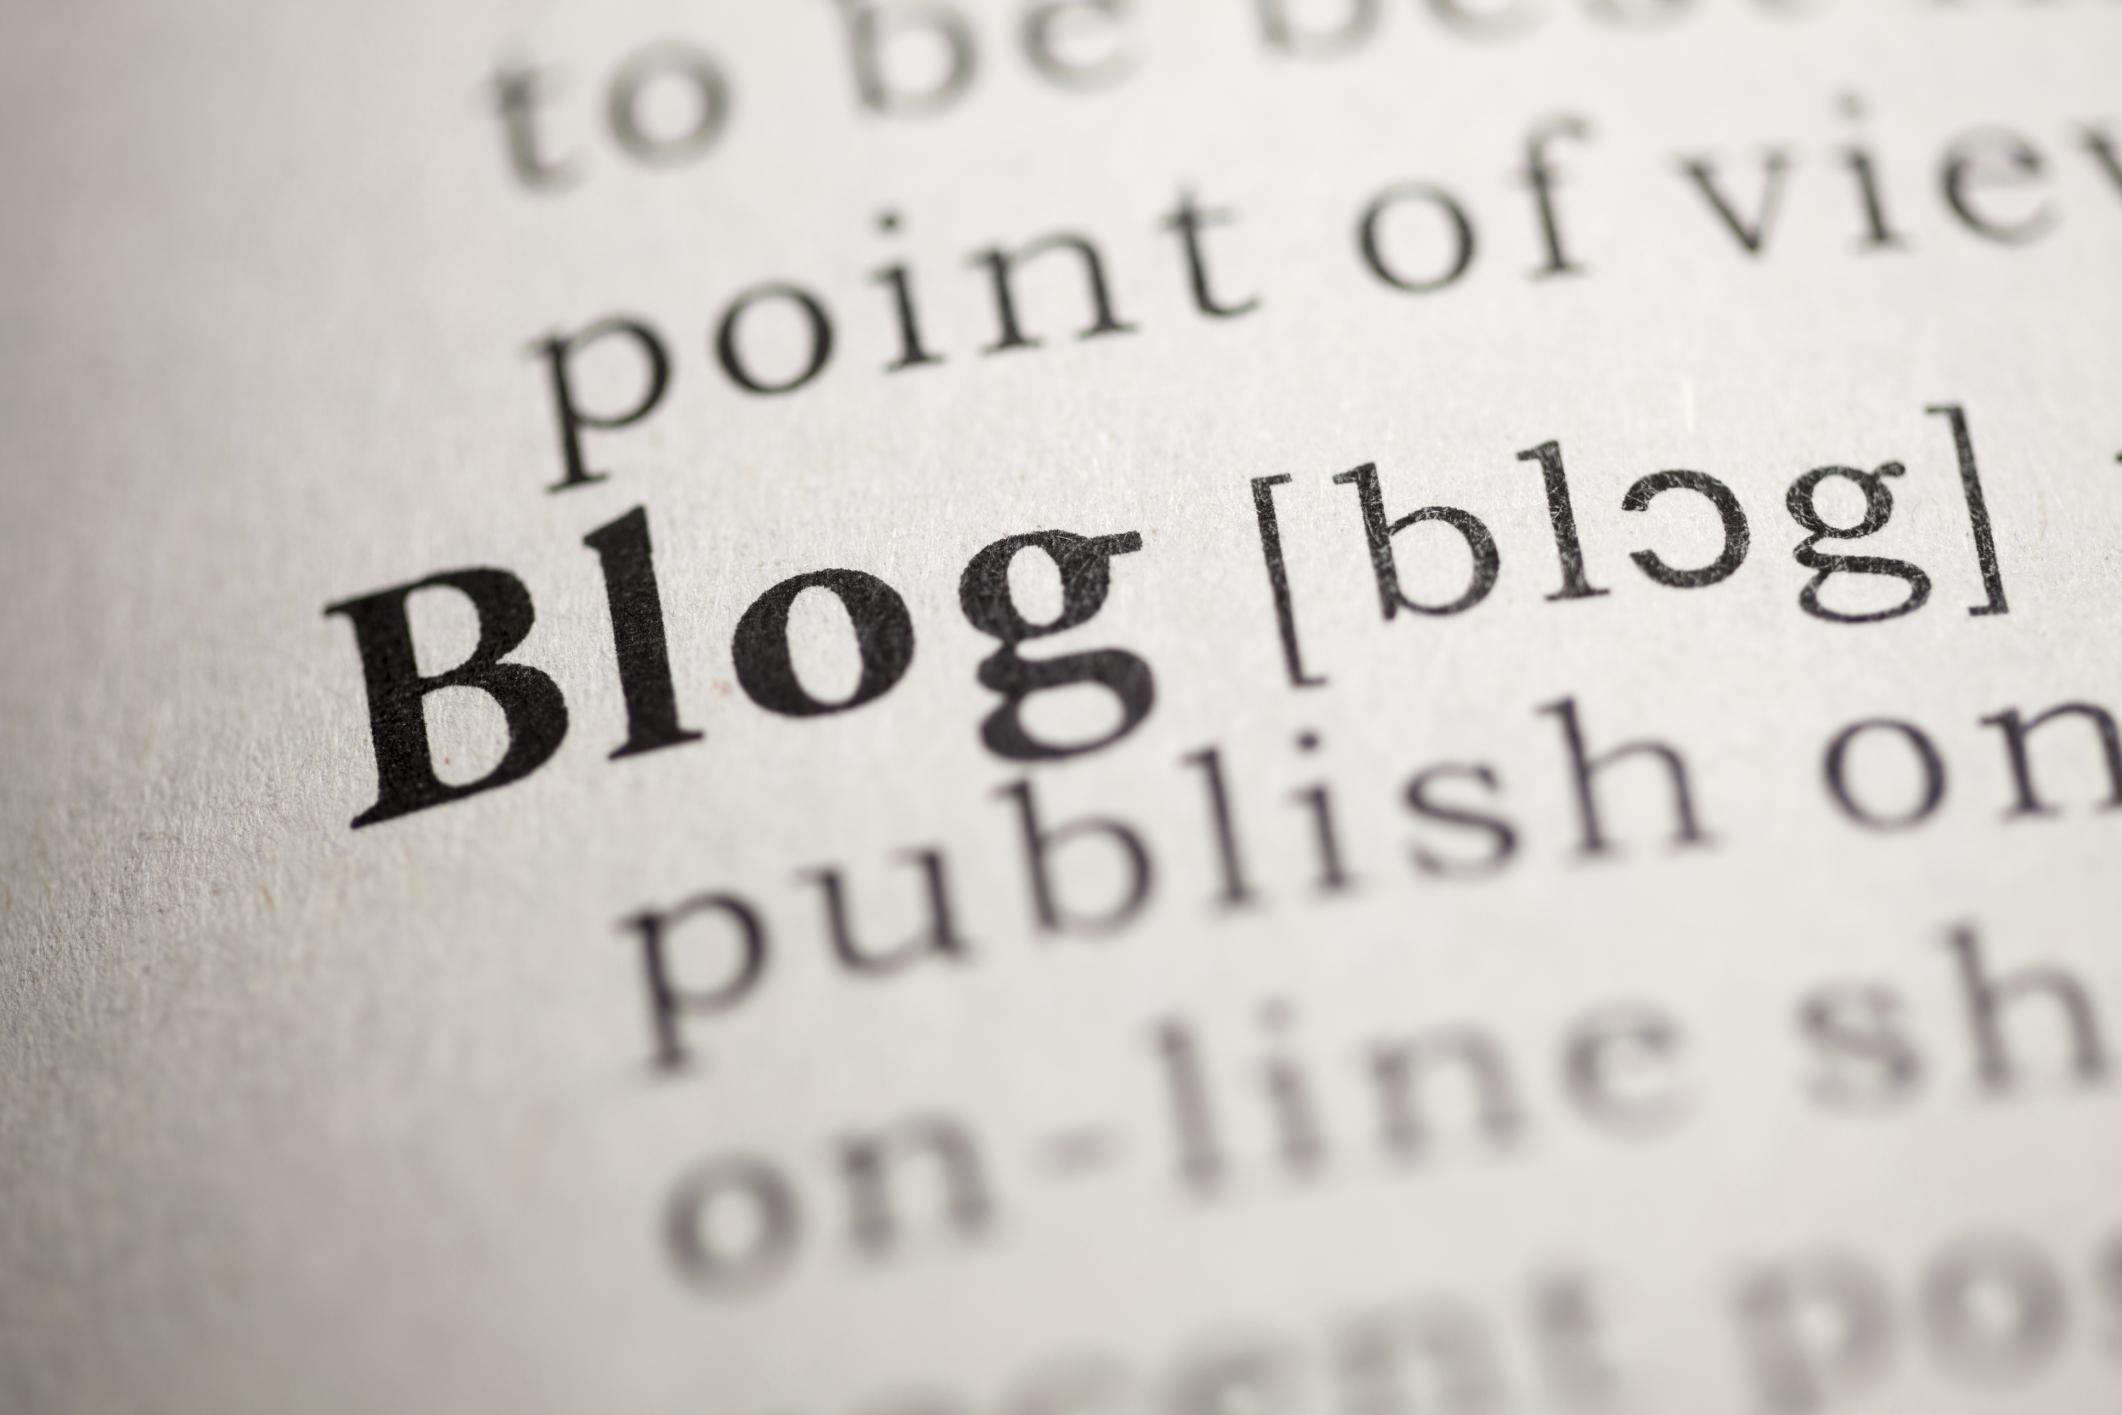 Journaling and Blogging